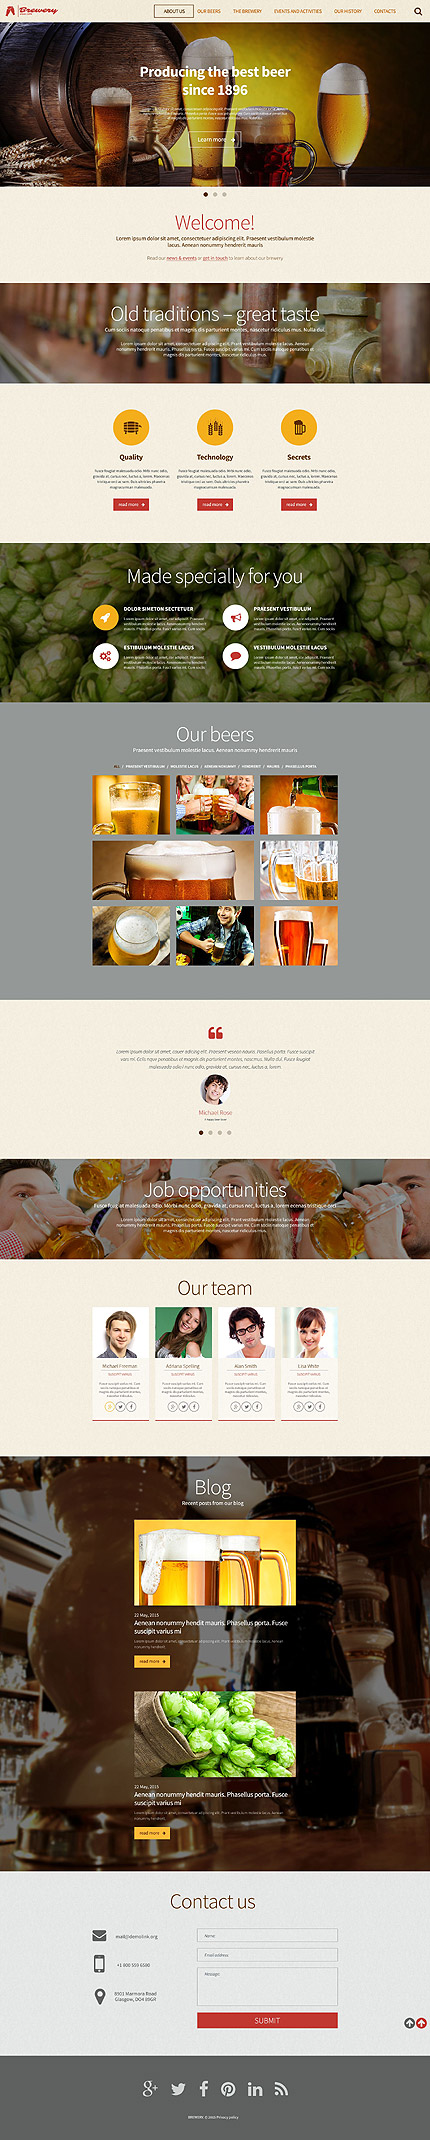 Cafe and Restaurant Most Popular website inspirations at your coffee break? Browse for more WordPress #templates! // Regular price: $79 // Sources available: .PSD, .PHP, This theme is widgetized #Cafe and Restaurant #Most Popular #WordPress